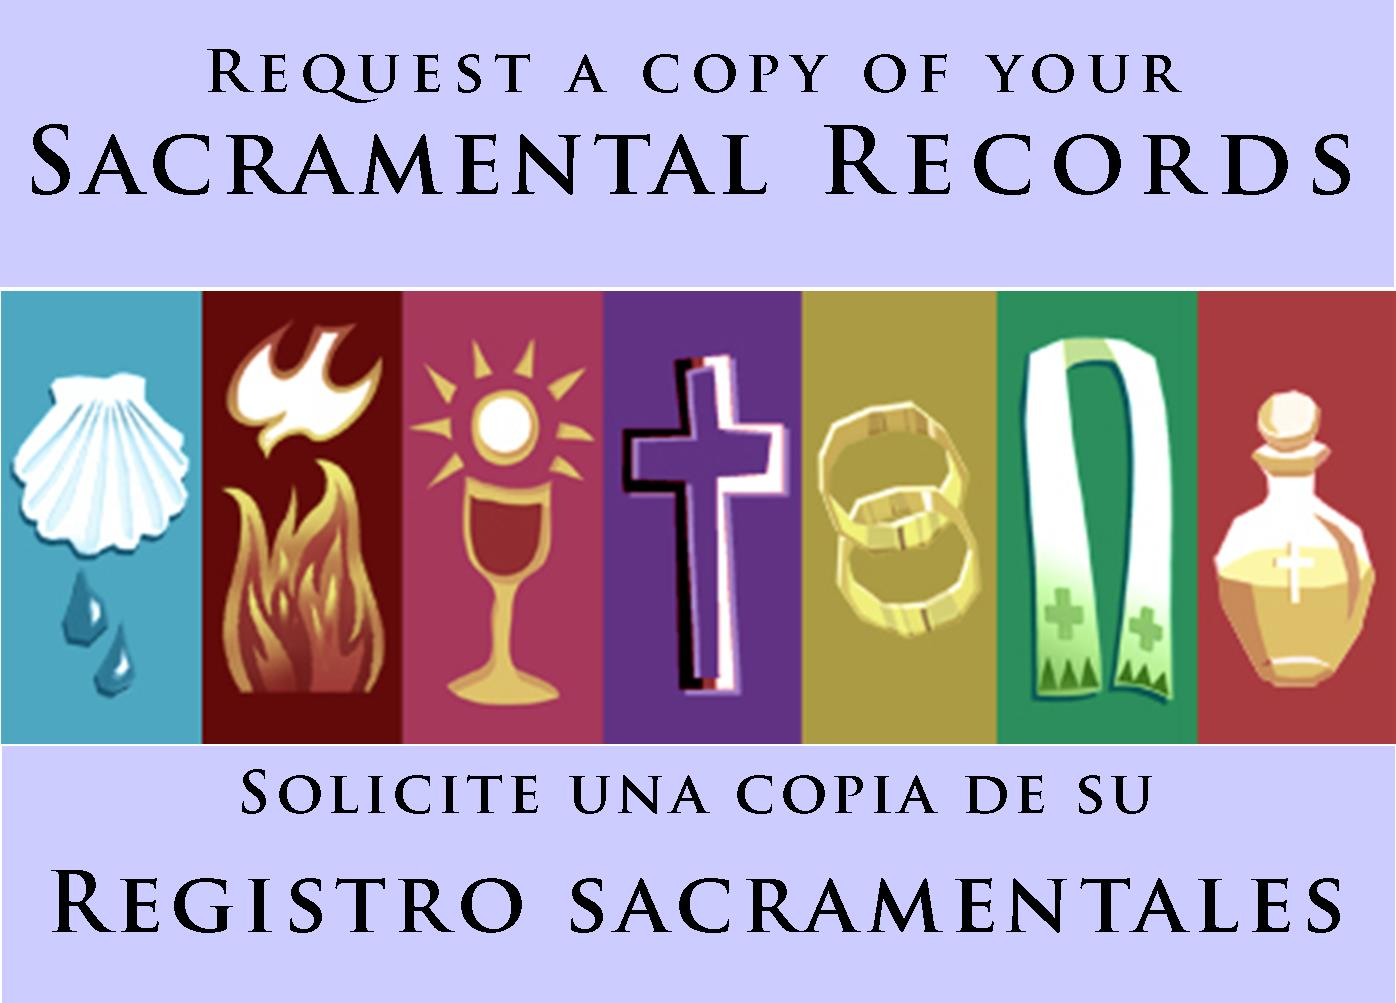 SACRAMENTAL RECORDS (COPIES)     en español - send email to    sara.ryan@stjohn-      frederick.org